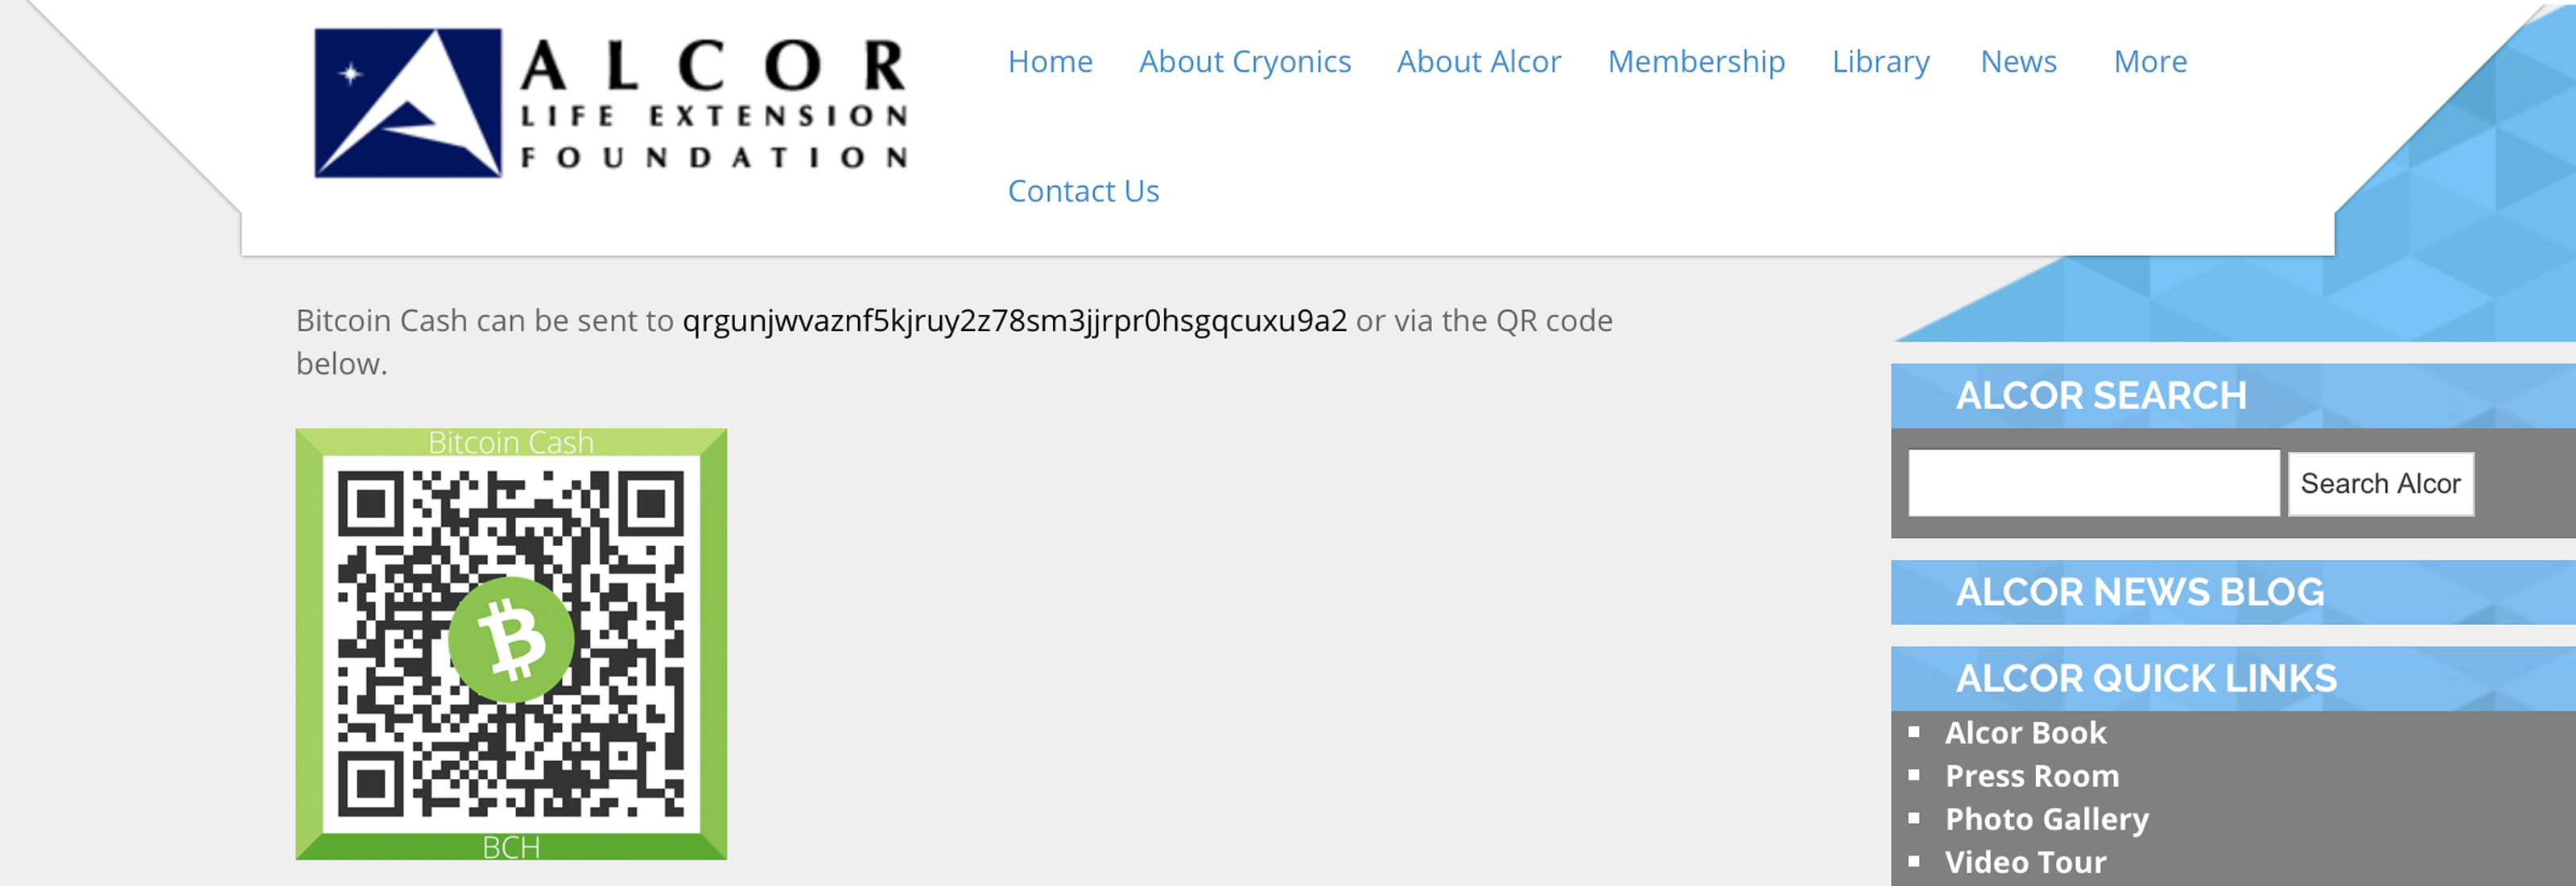 Alcor Life Extension Foundation Now Accepts Bitcoin Cash Donations